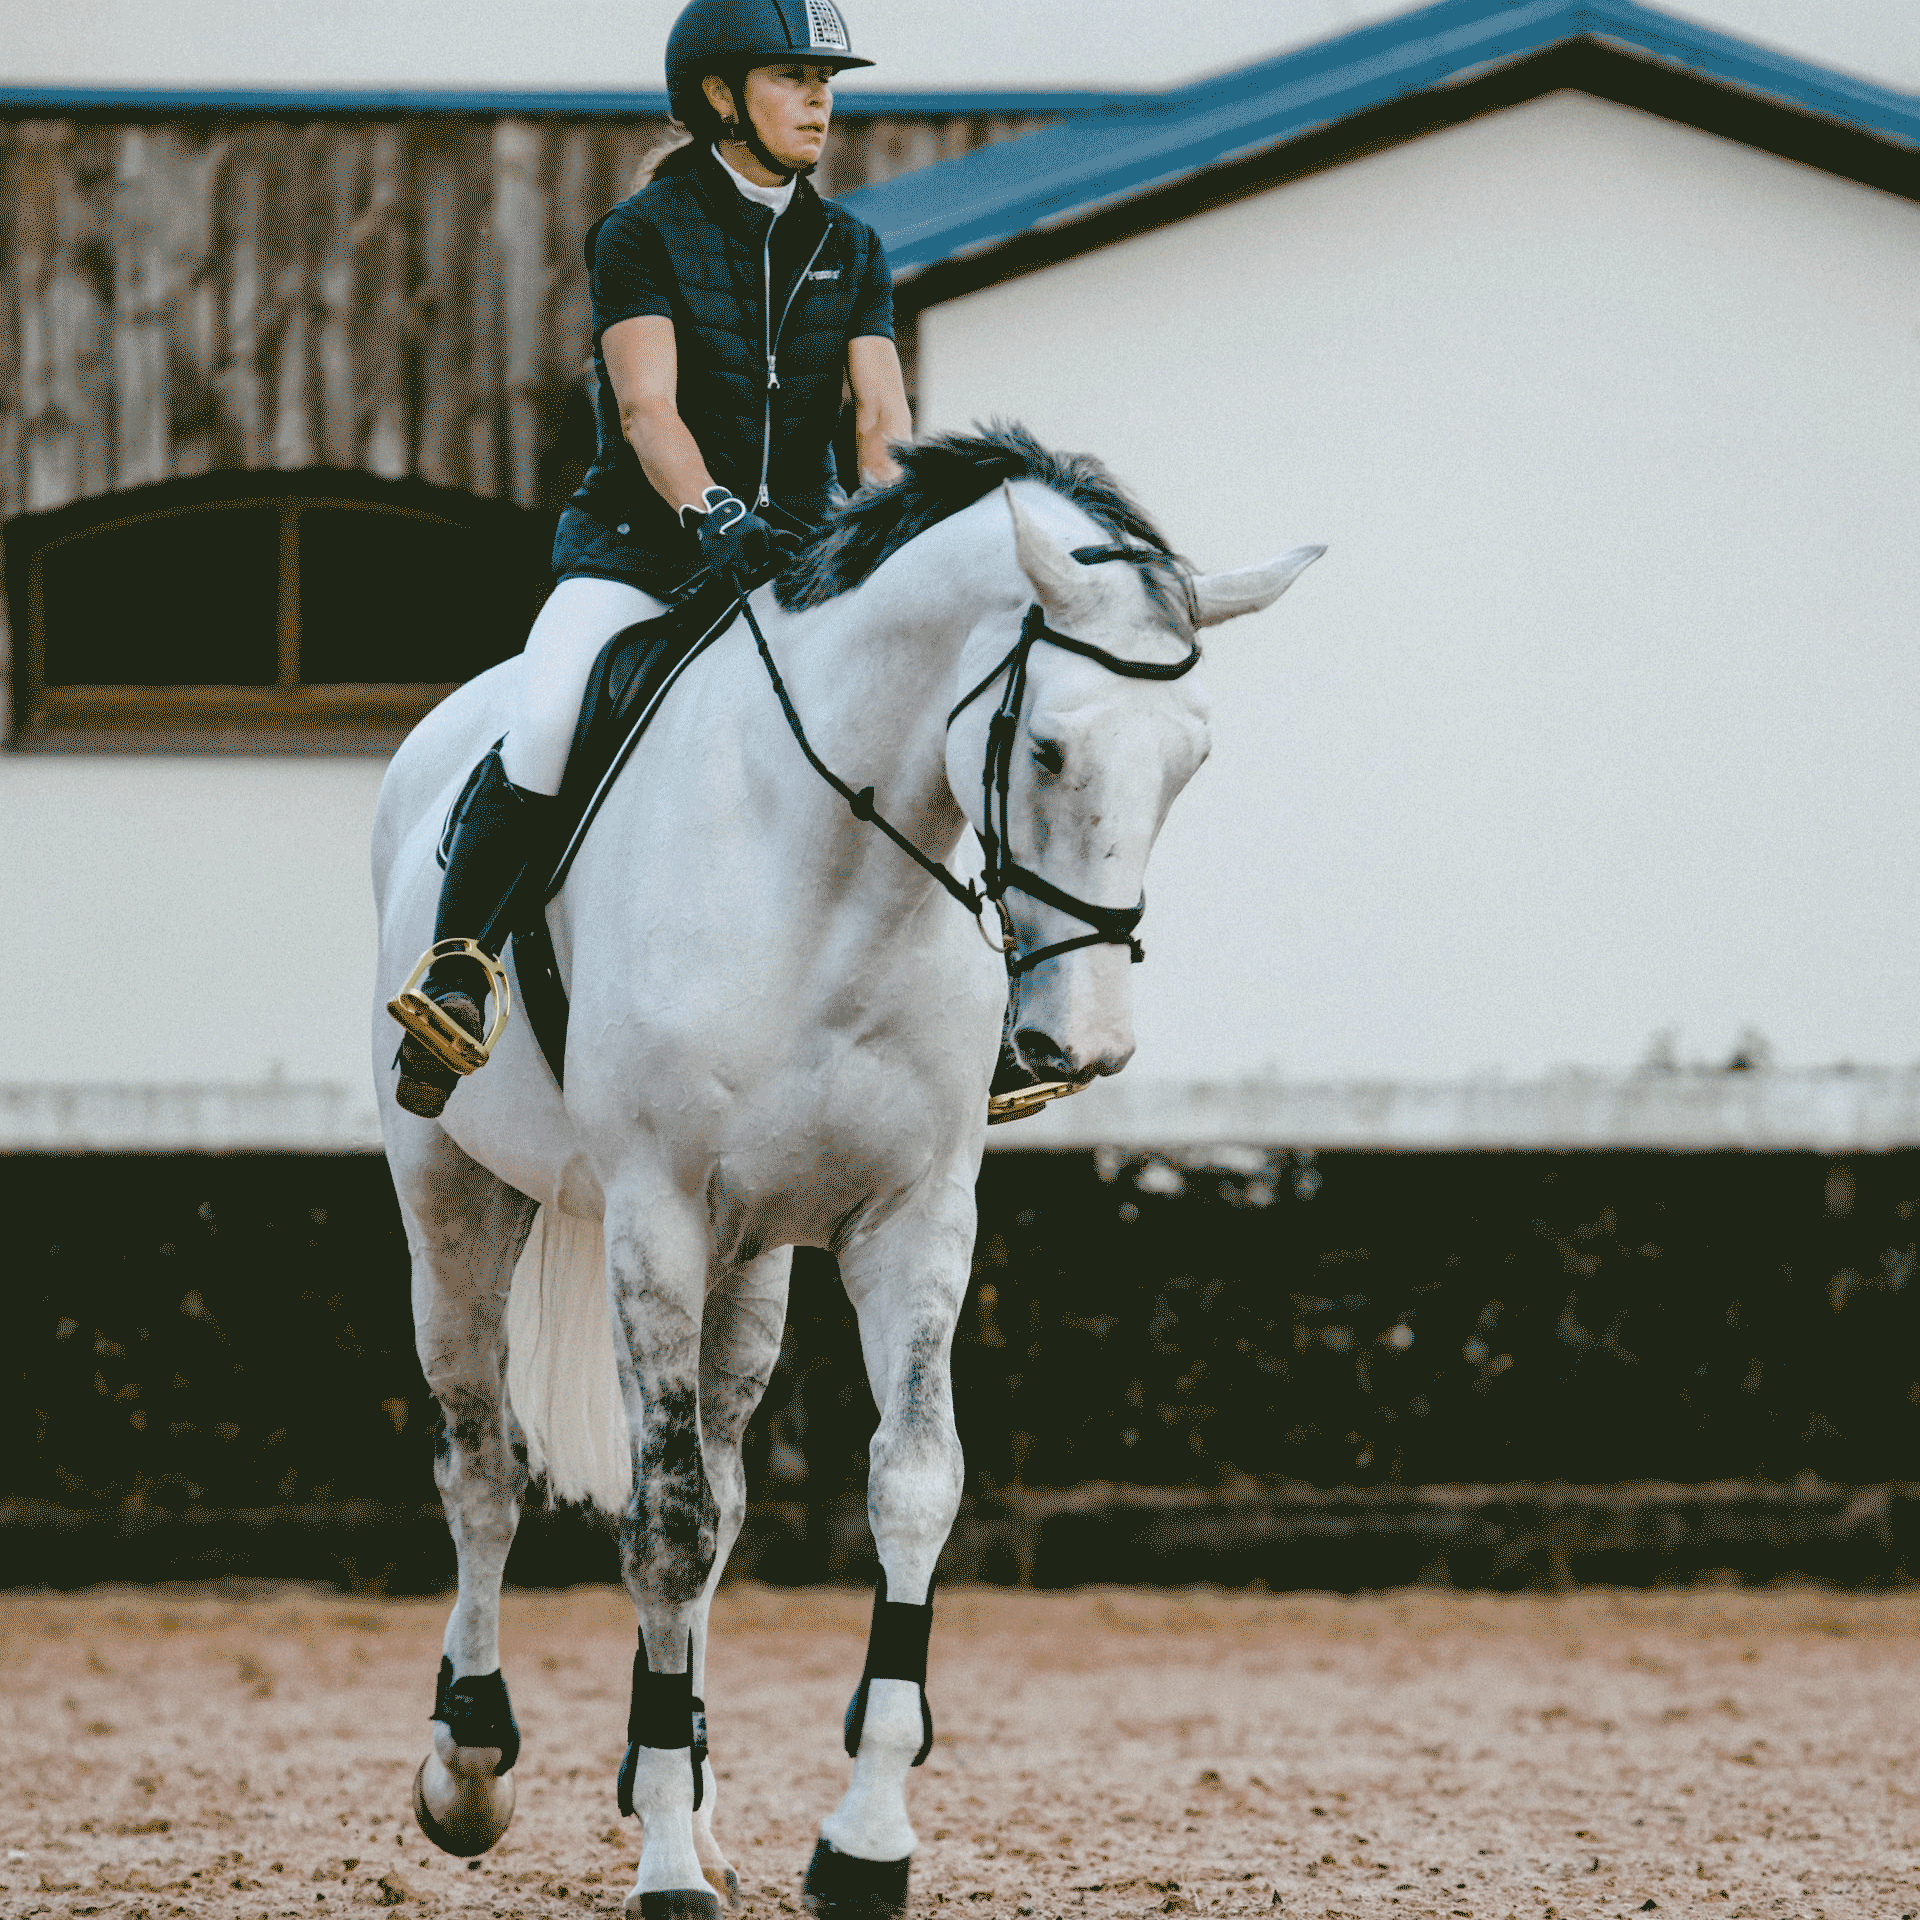 A girl riding her horse in an arena